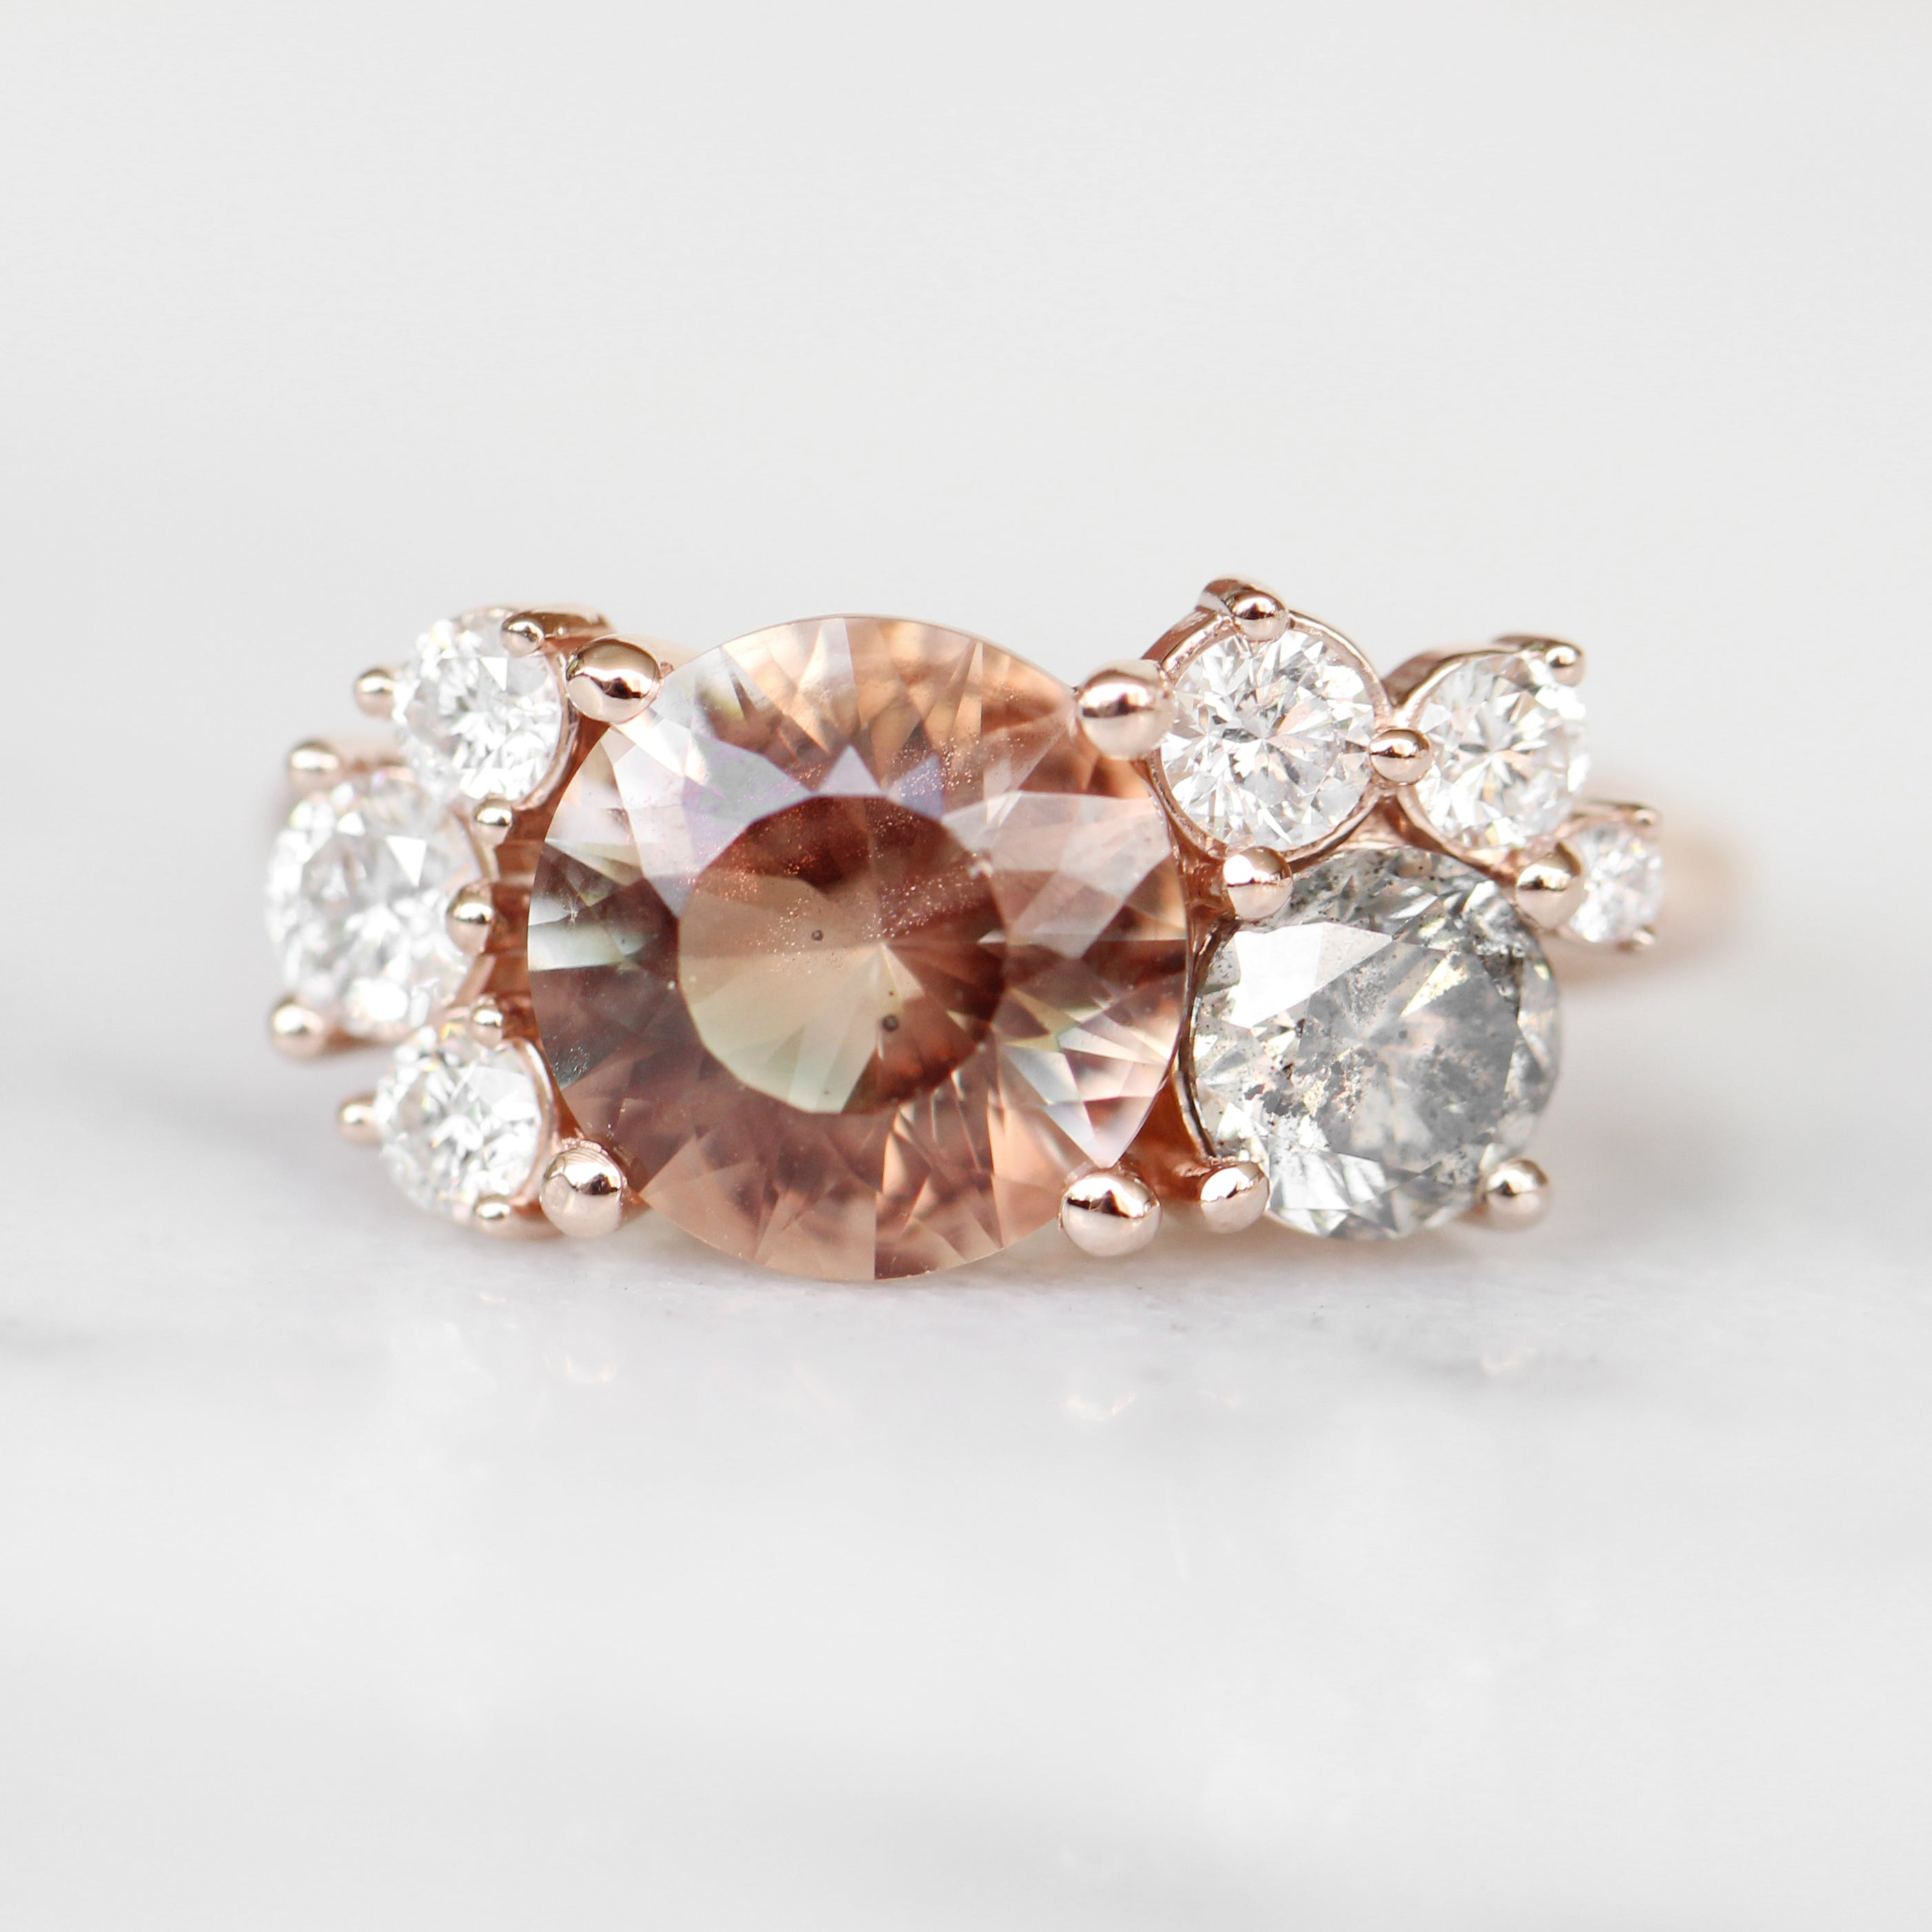 Safian cluster ring with Sunstone and Diamonds in 10k rose gold - ready to size and ship - Salt & Pepper Celestial Diamond Engagement Rings and Wedding Bands  by Midwinter Co.